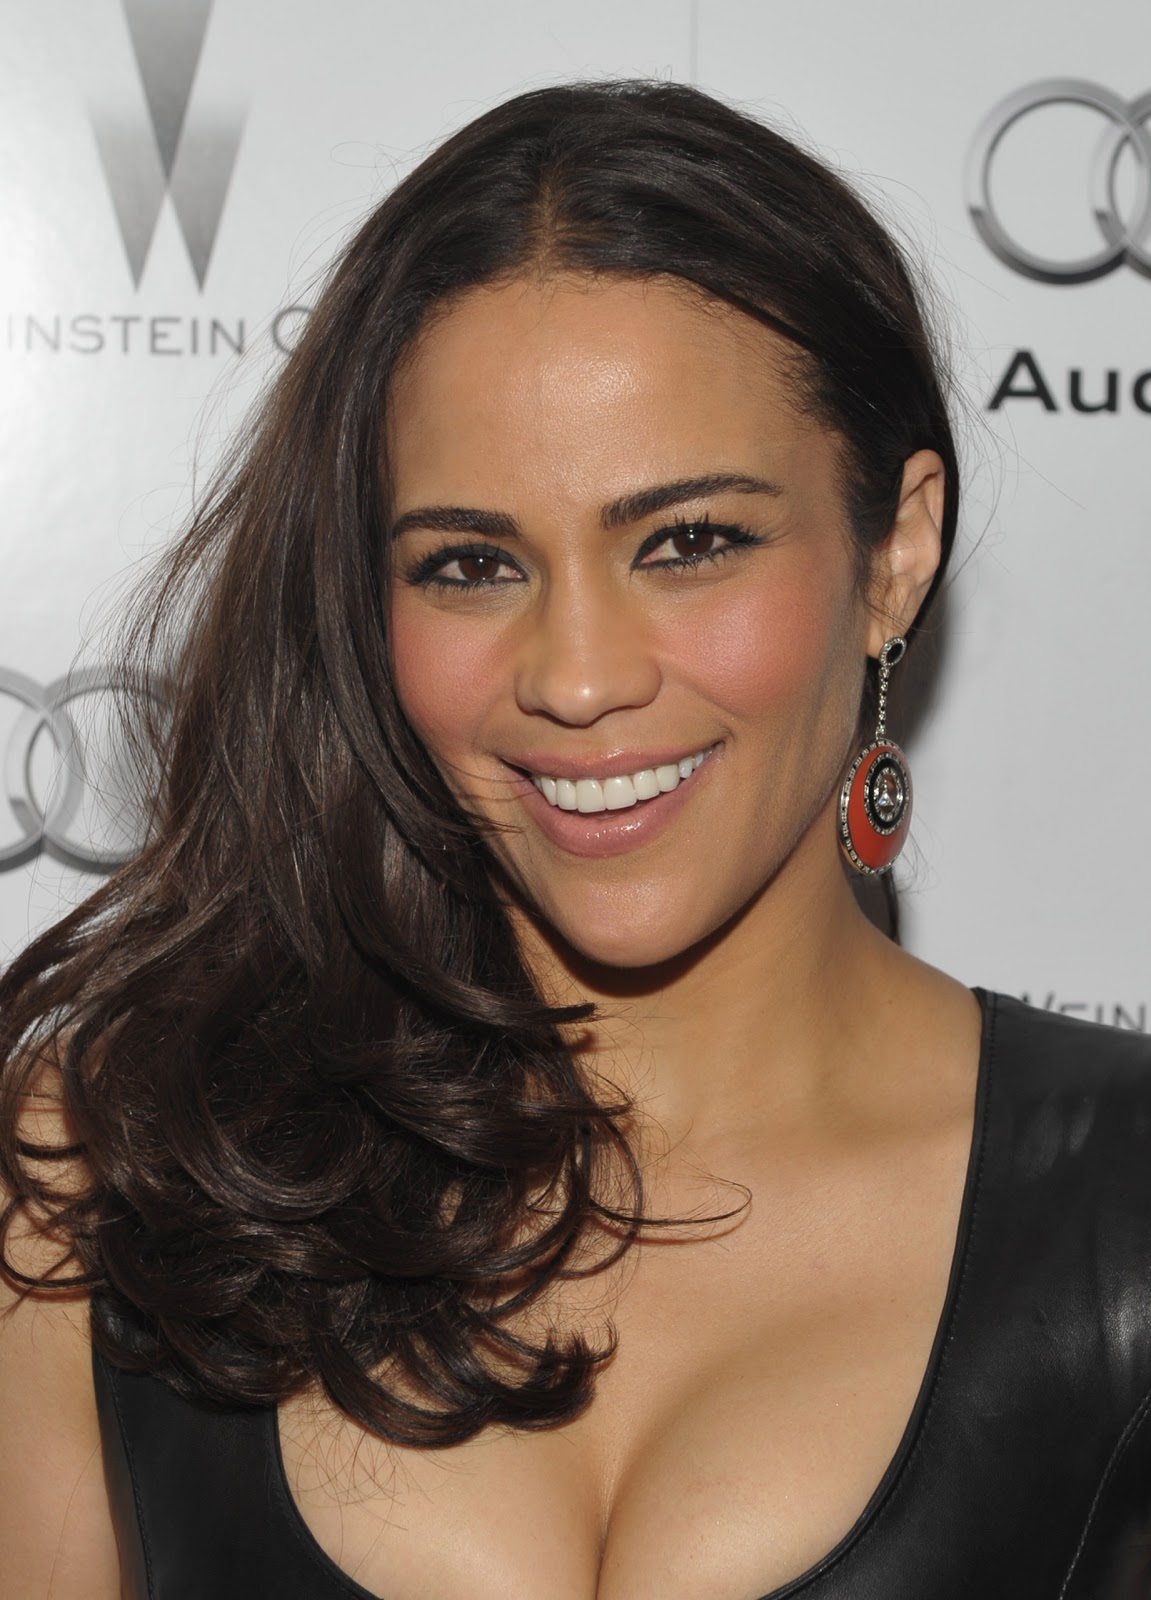 Paula Patton's Leather Cleavage